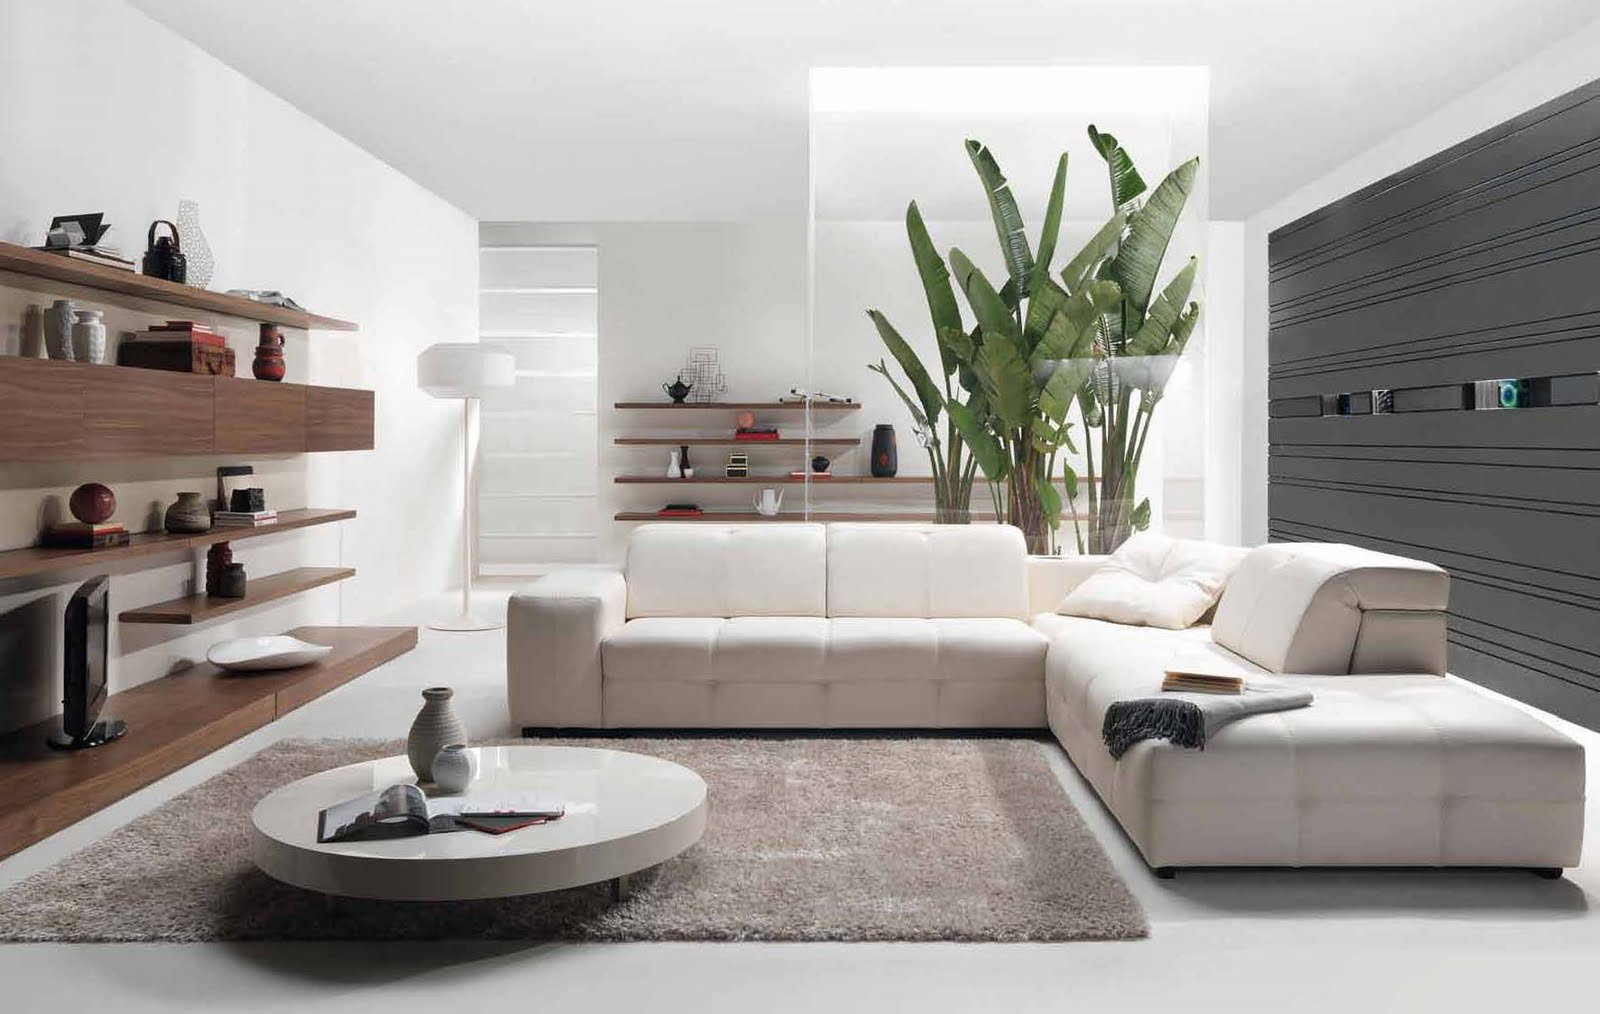 interior living room design ideas modern home interior amp furniture designs amp diy ideas 23572